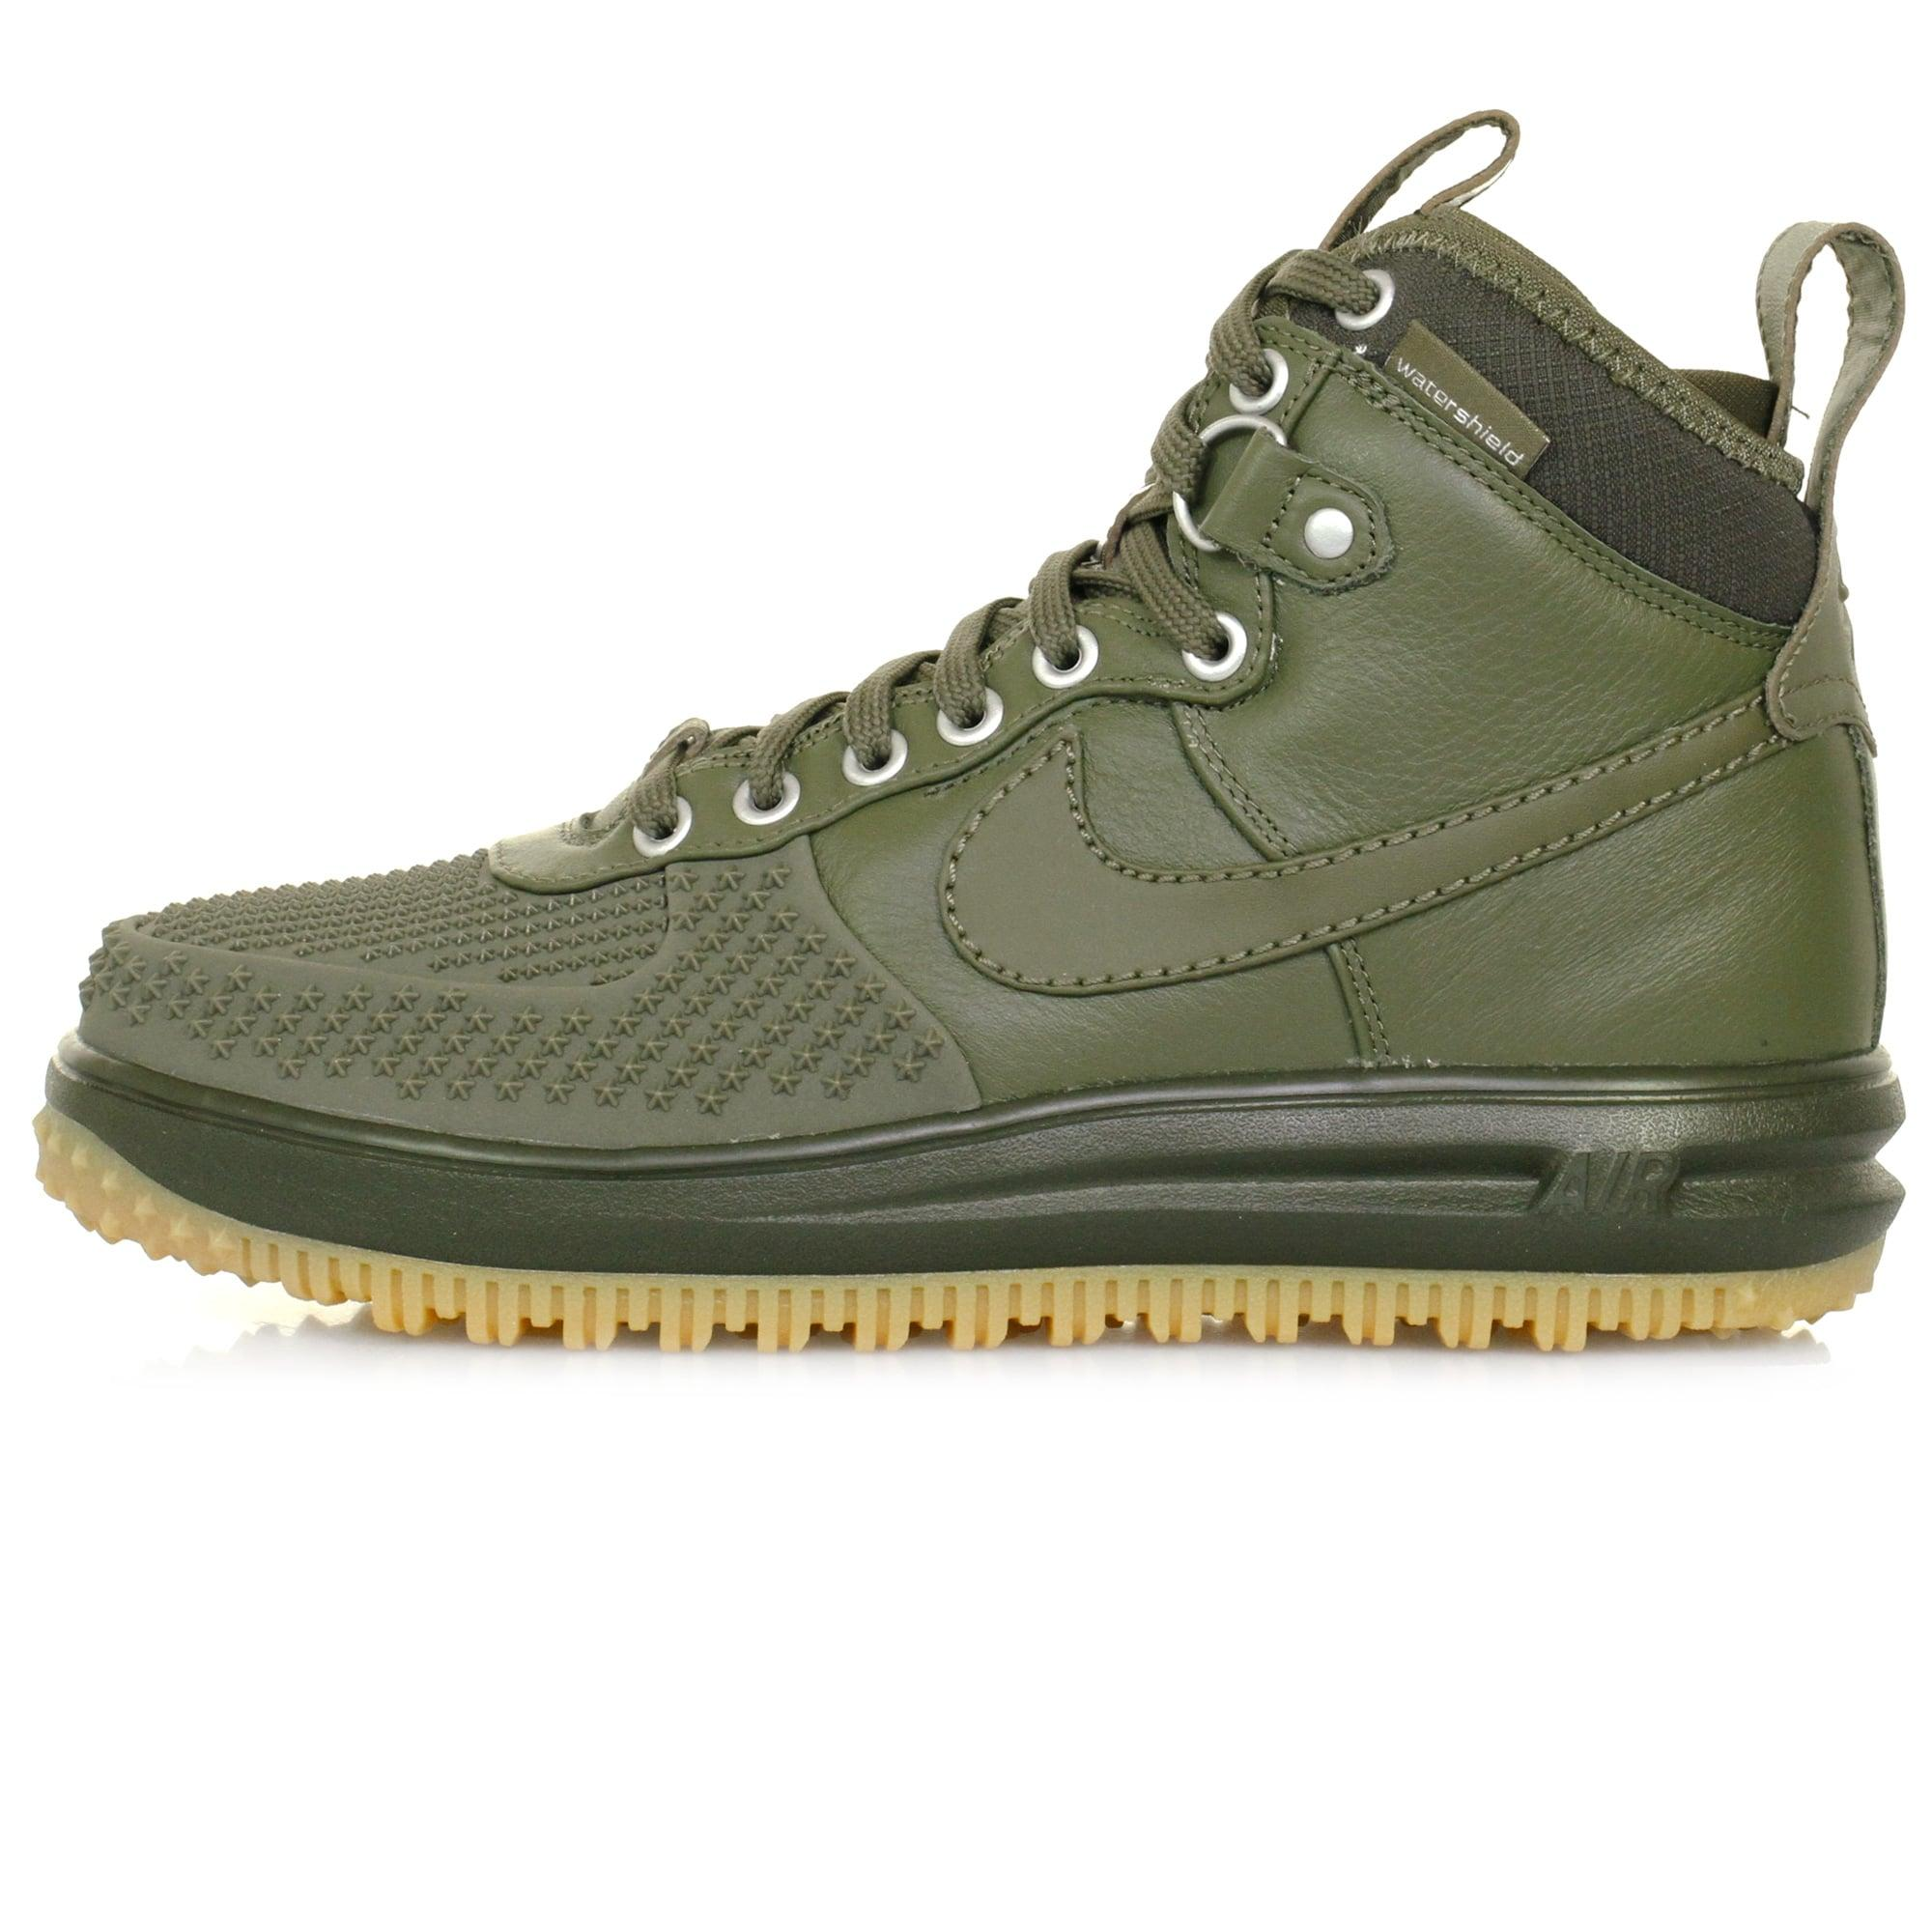 sports shoes 6f9e9 5d179 Nike Lunar Force 1 Duckboot Medium Olive Boot 805899201 for Men - Lyst